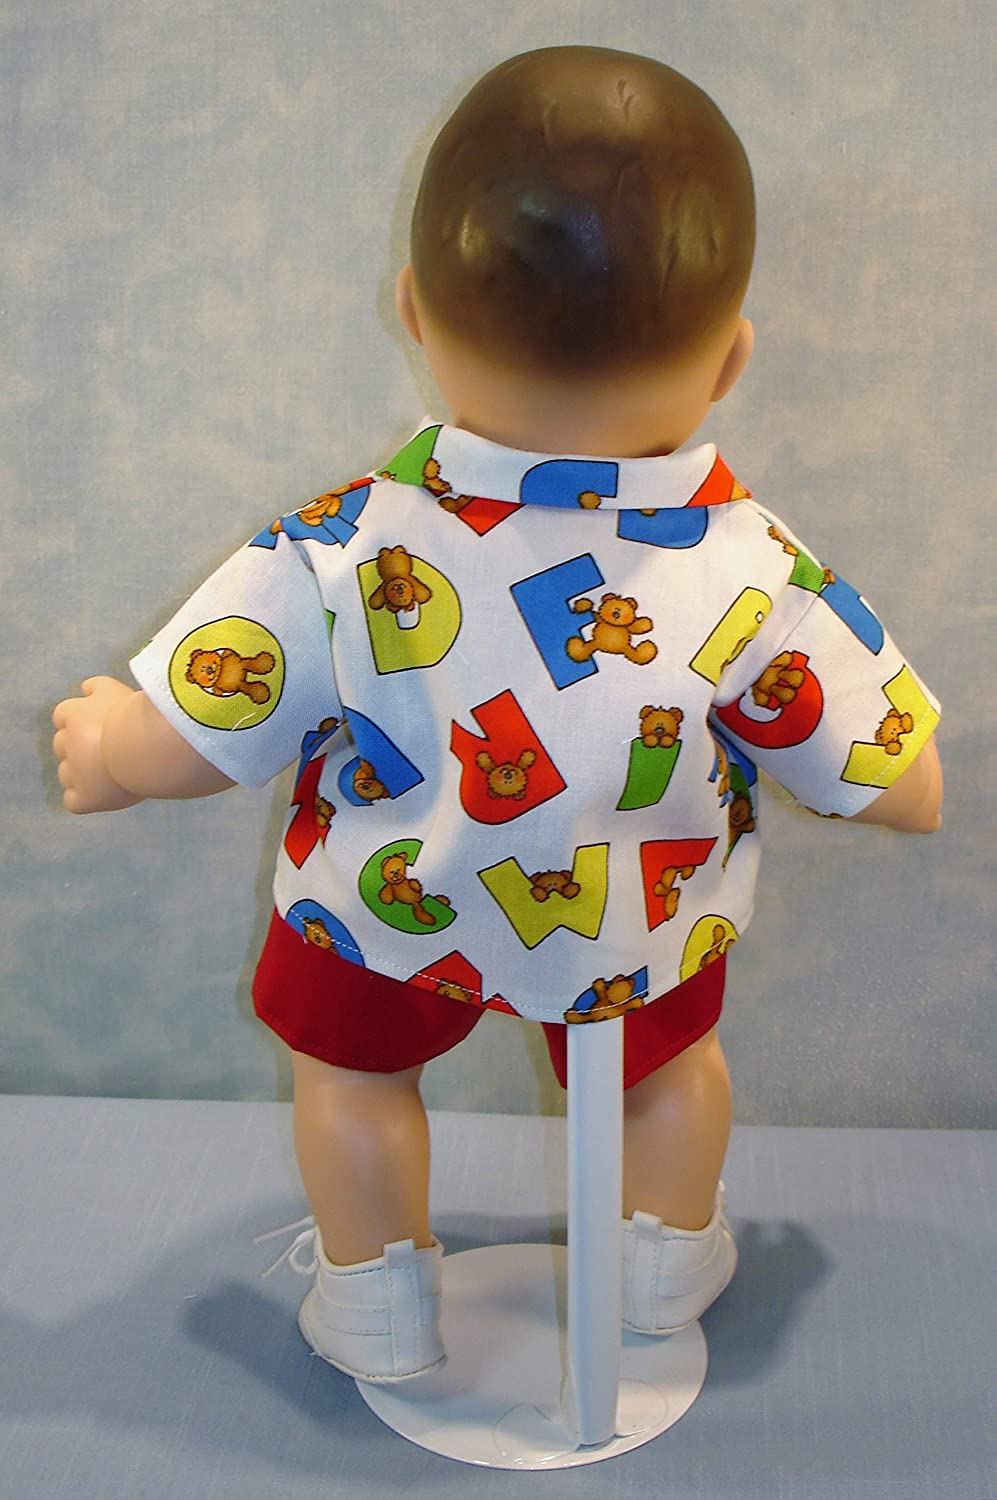 15 Inch Doll Clothes Bears on Alphabets Boys Back to School Outfit handmade by Jane Ellen to fit 15 inch baby dolls